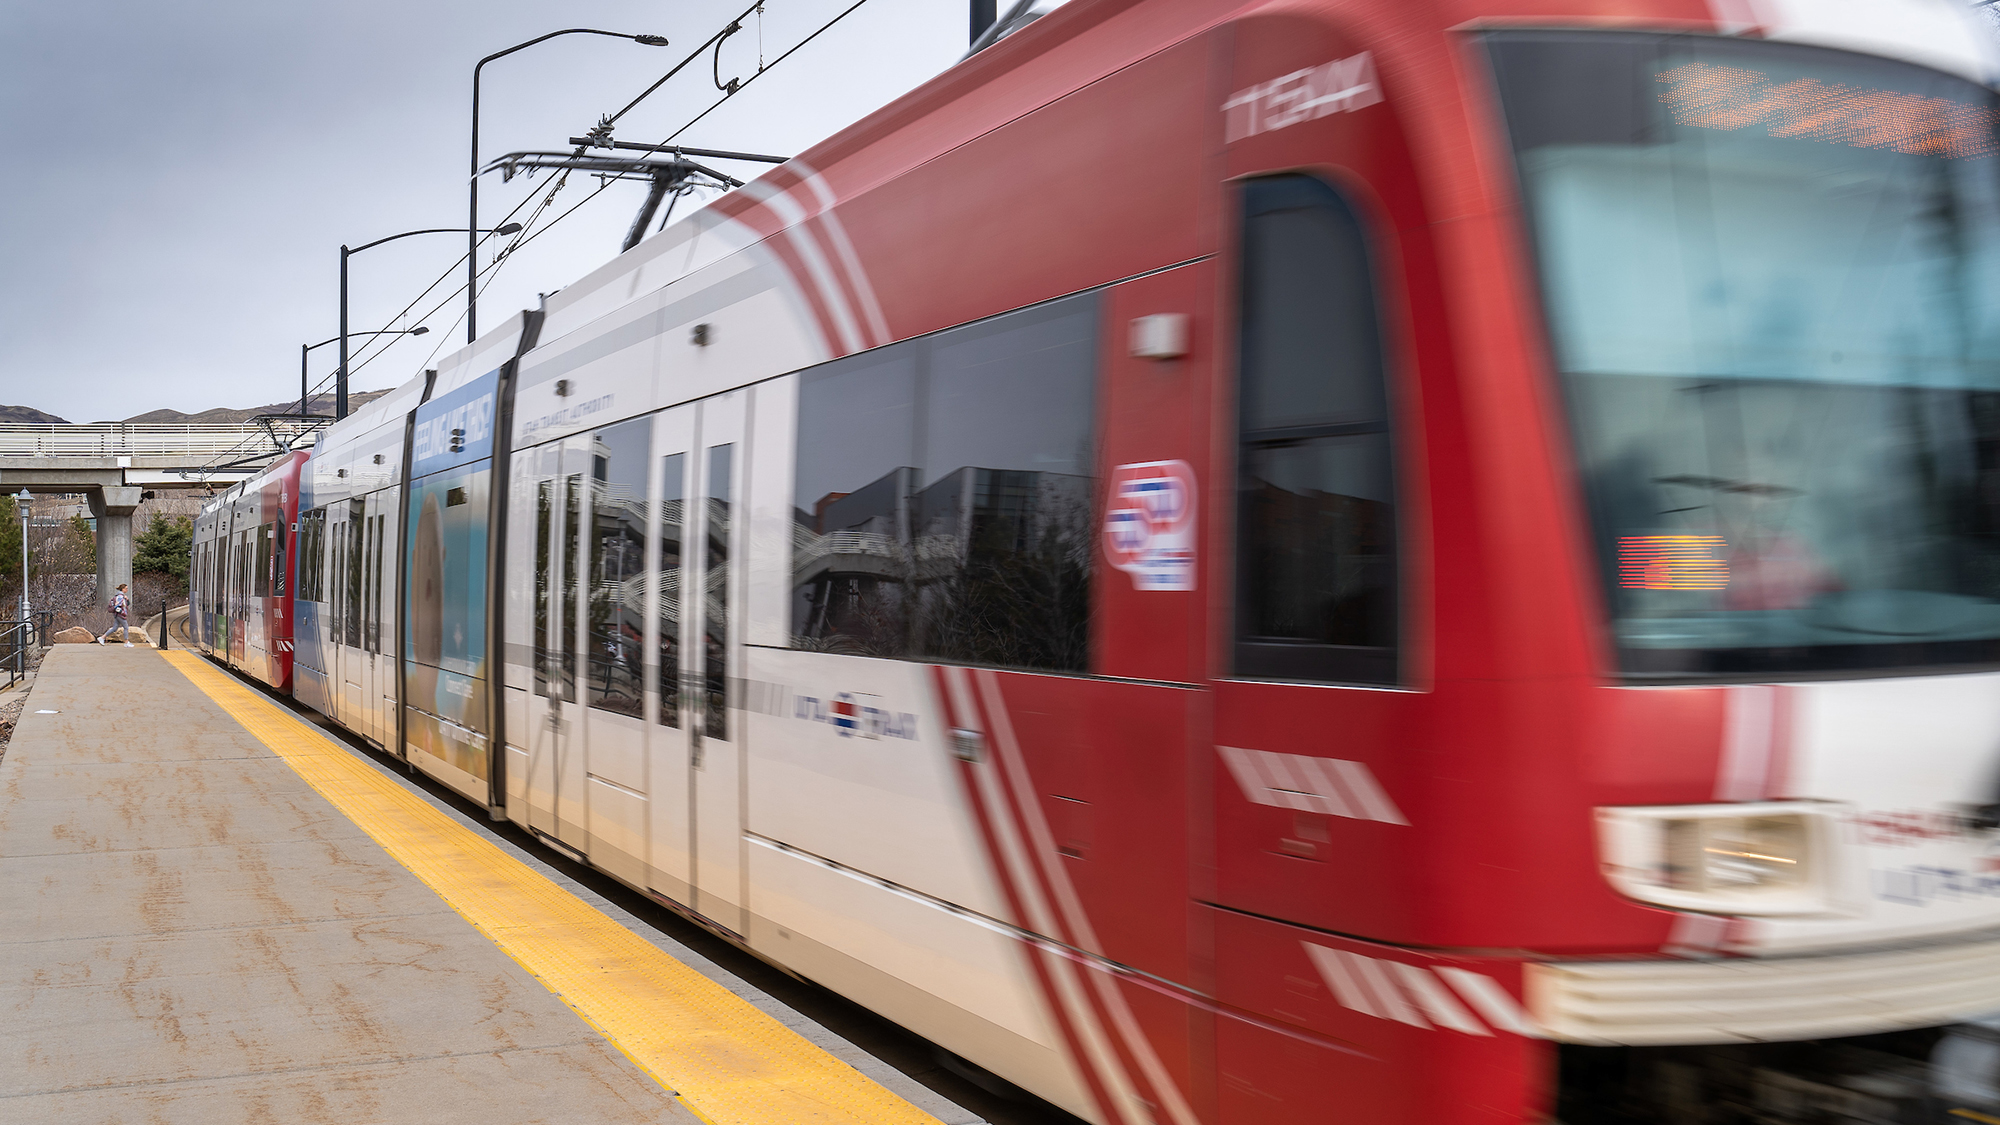 A red and white TRAX light rail train blurred by motion